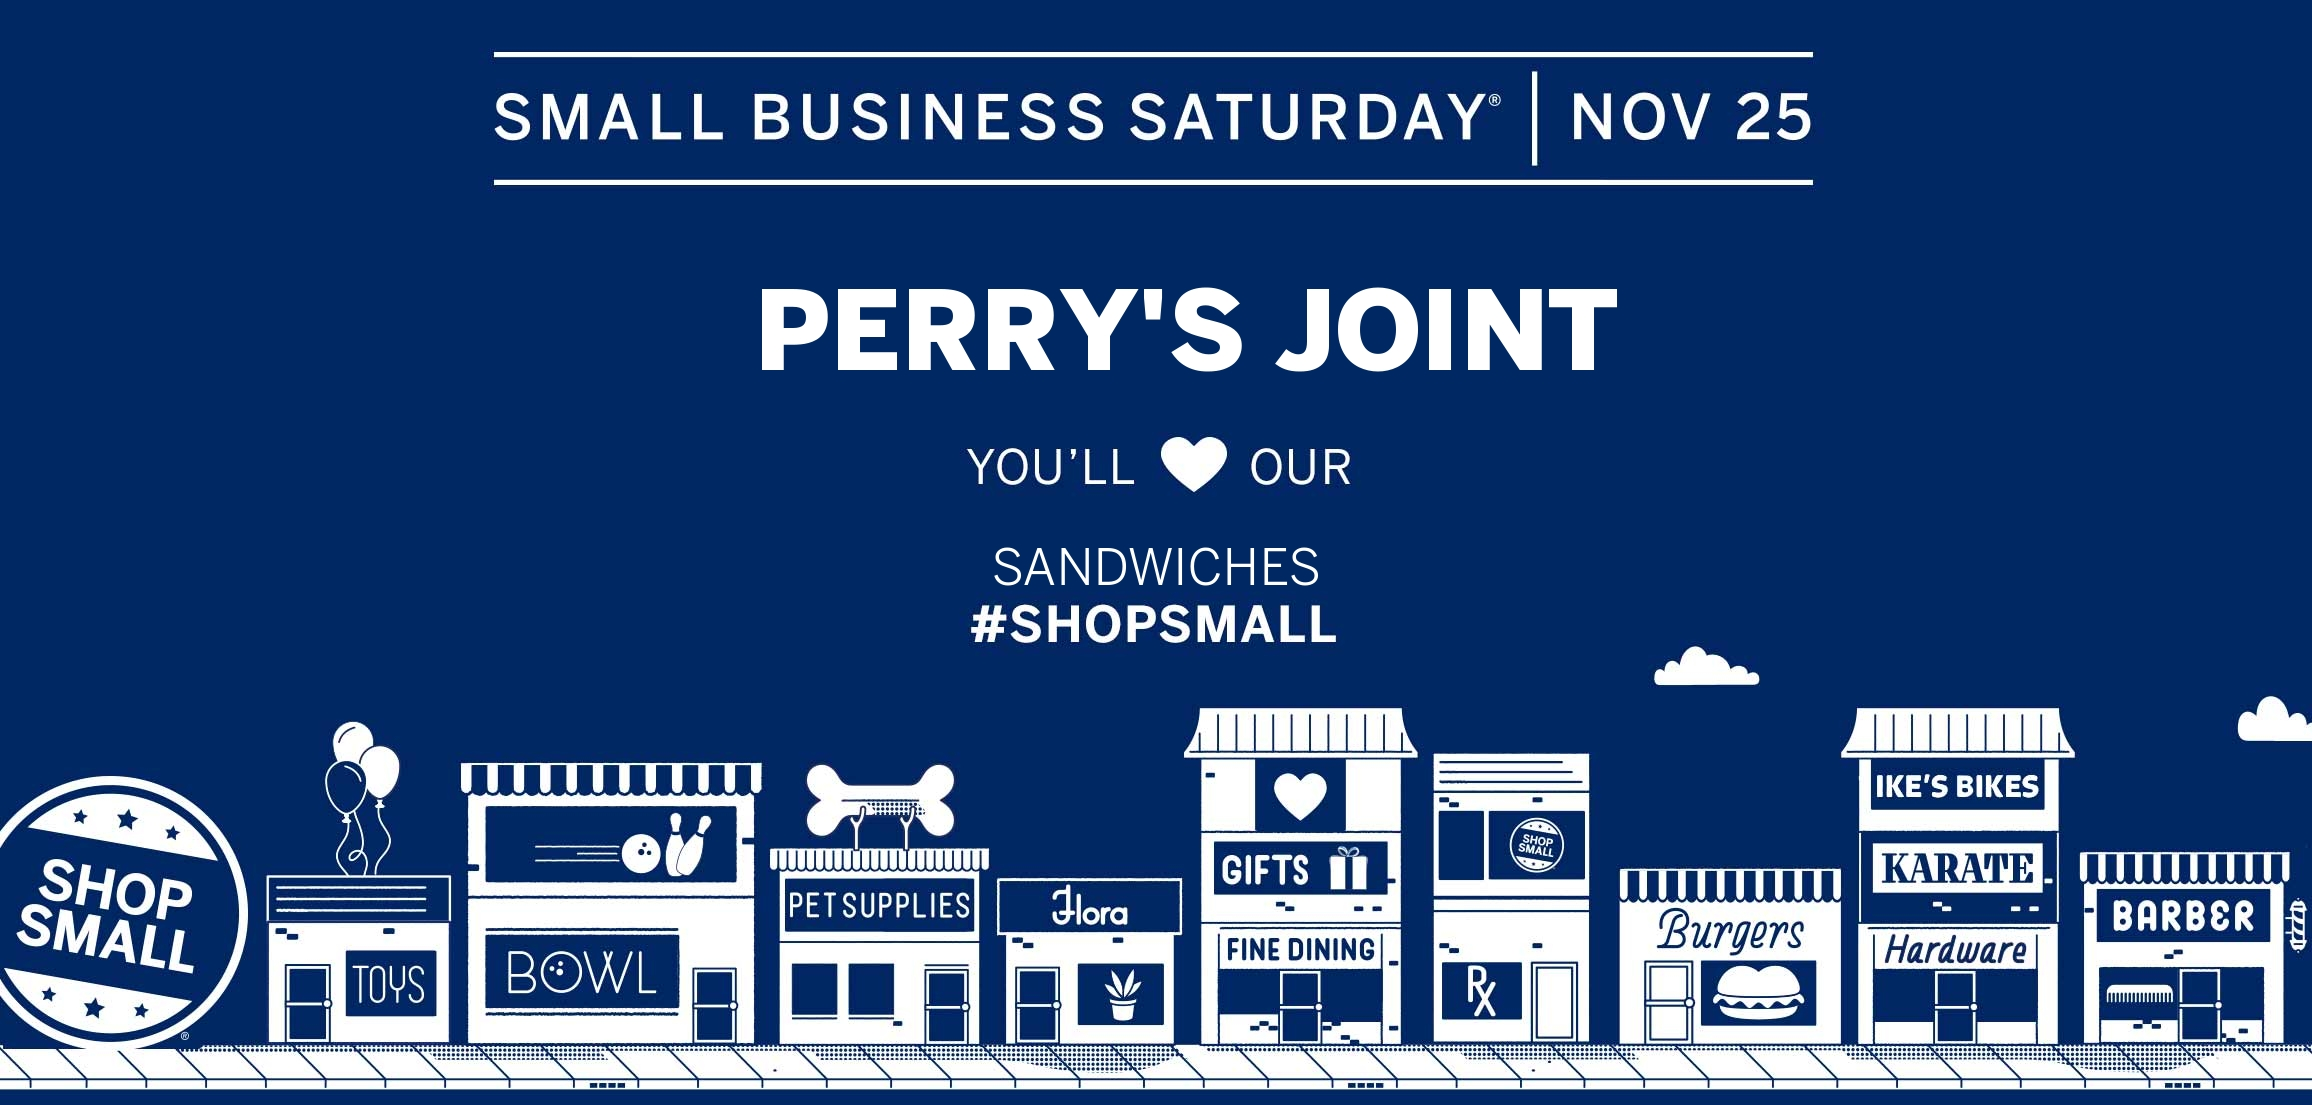 Perry's Joint Small Business Saturday | 11.25.17